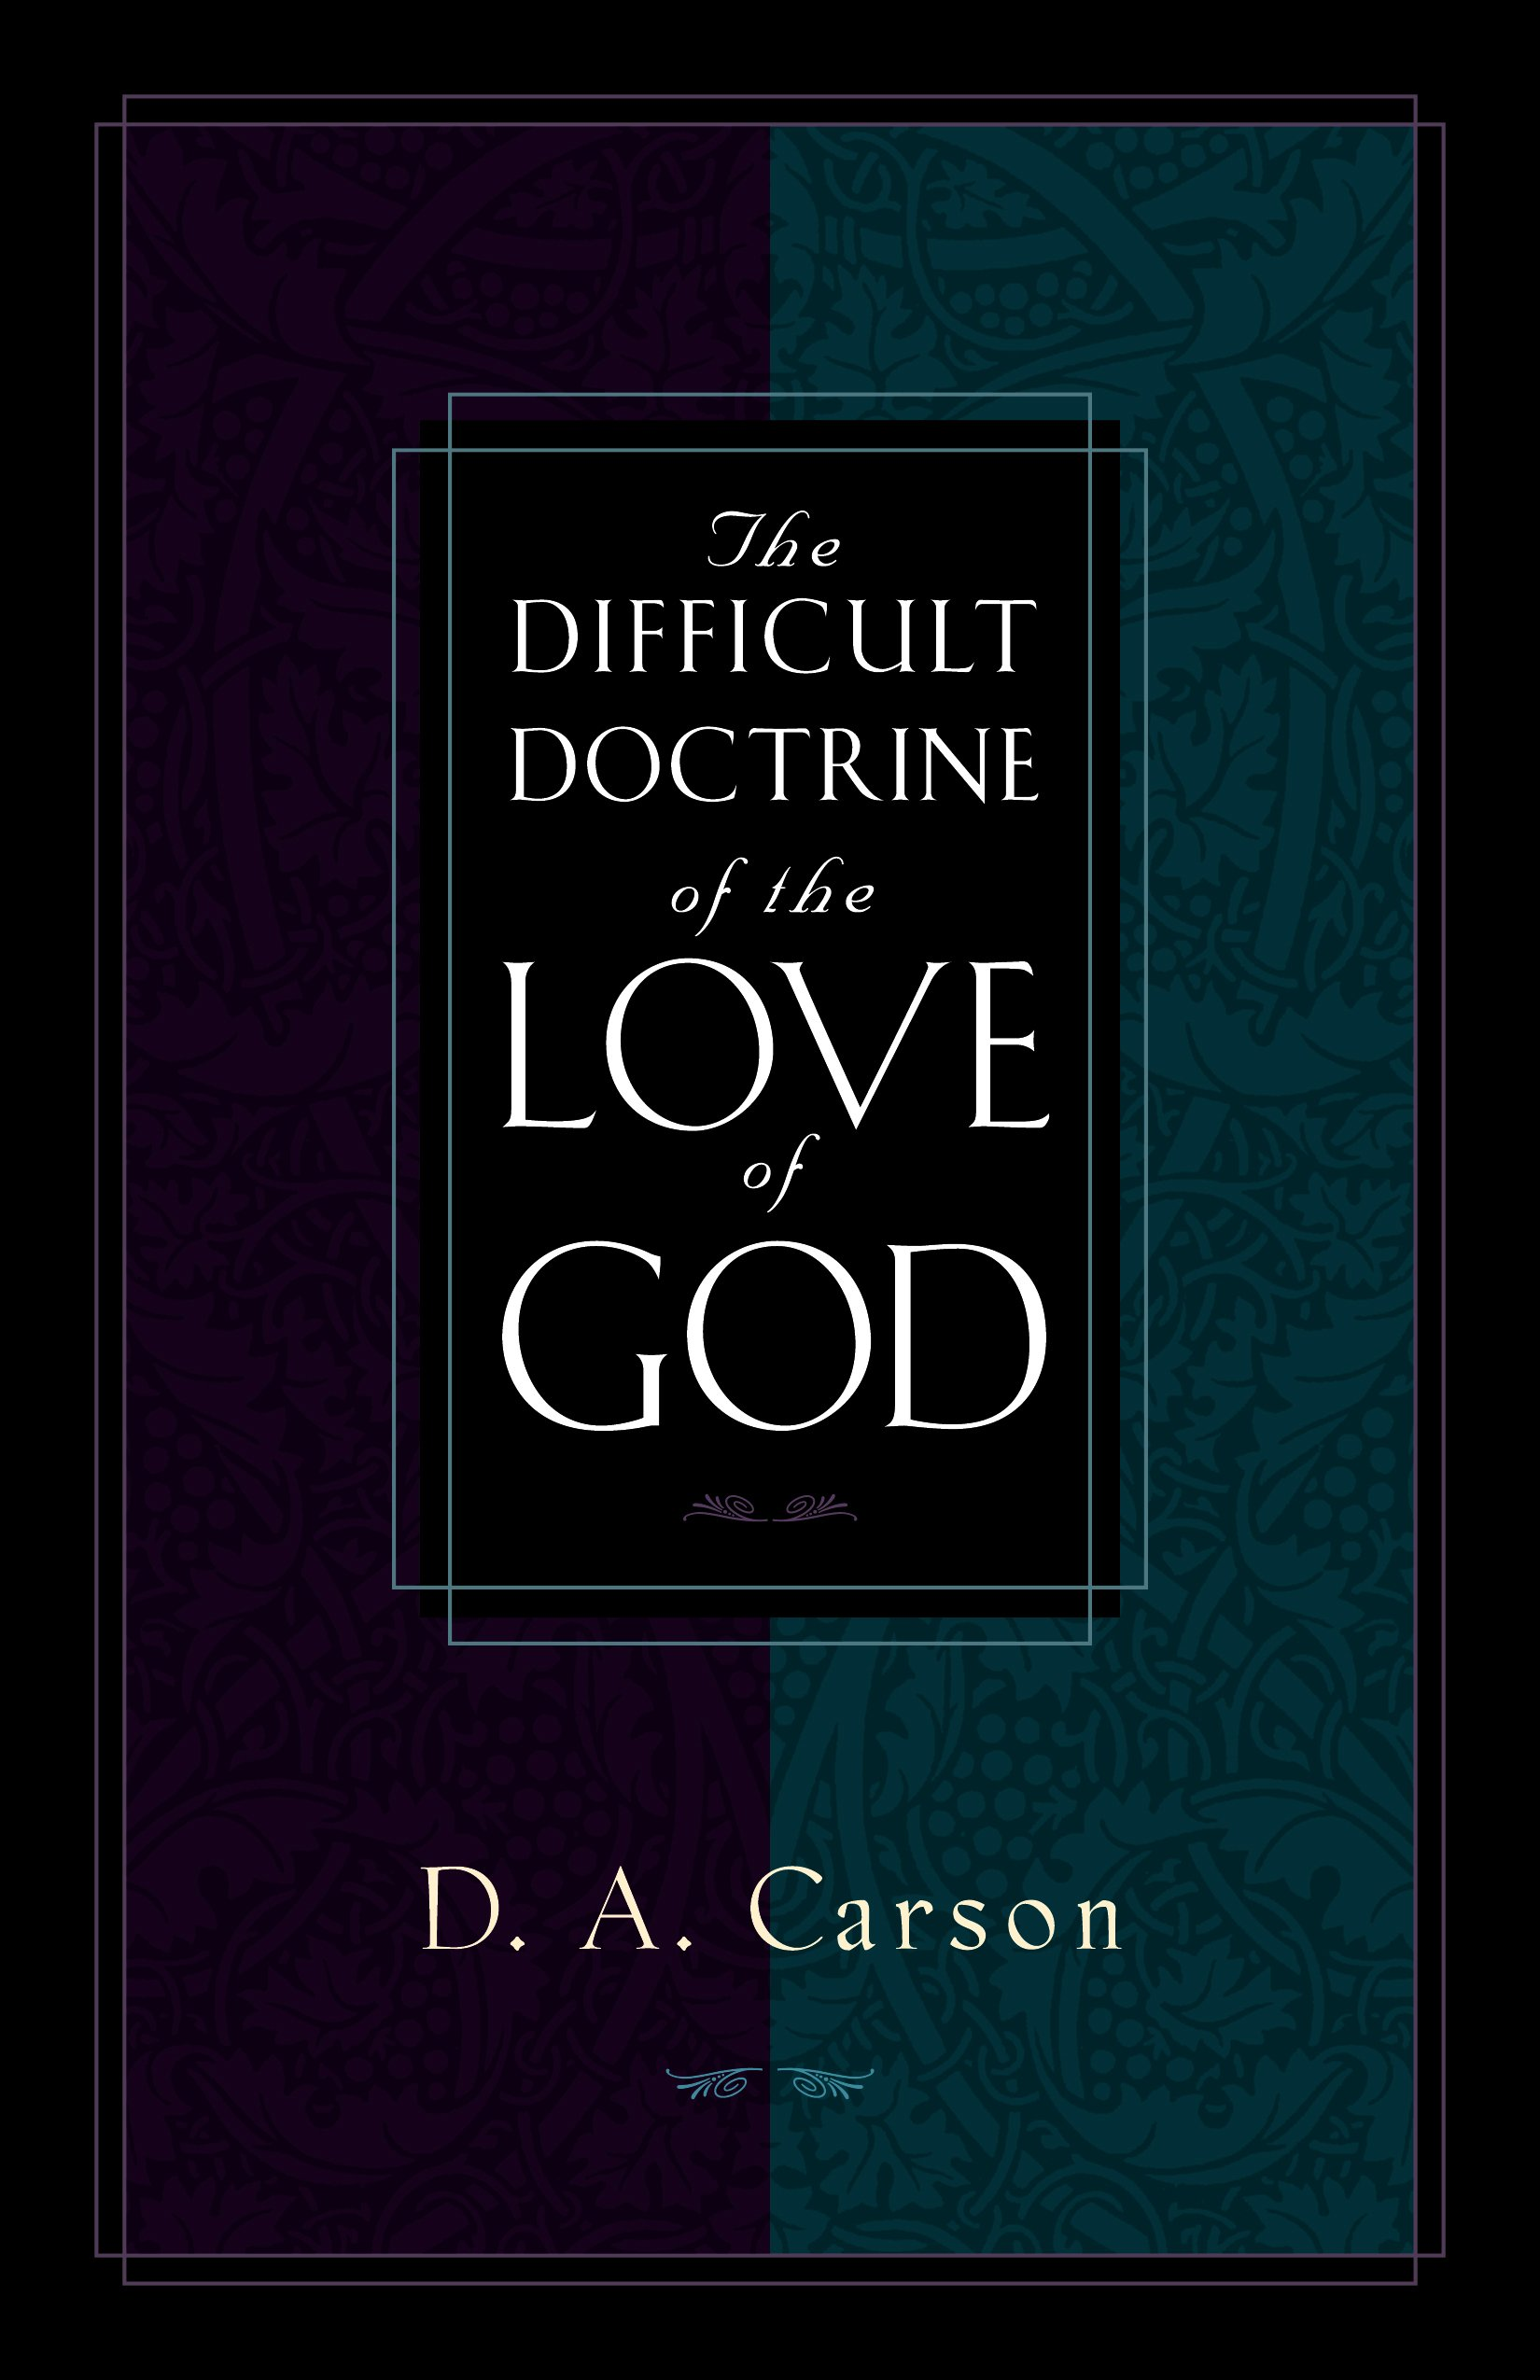 The Difficult Doctrine of the Love of God PDF